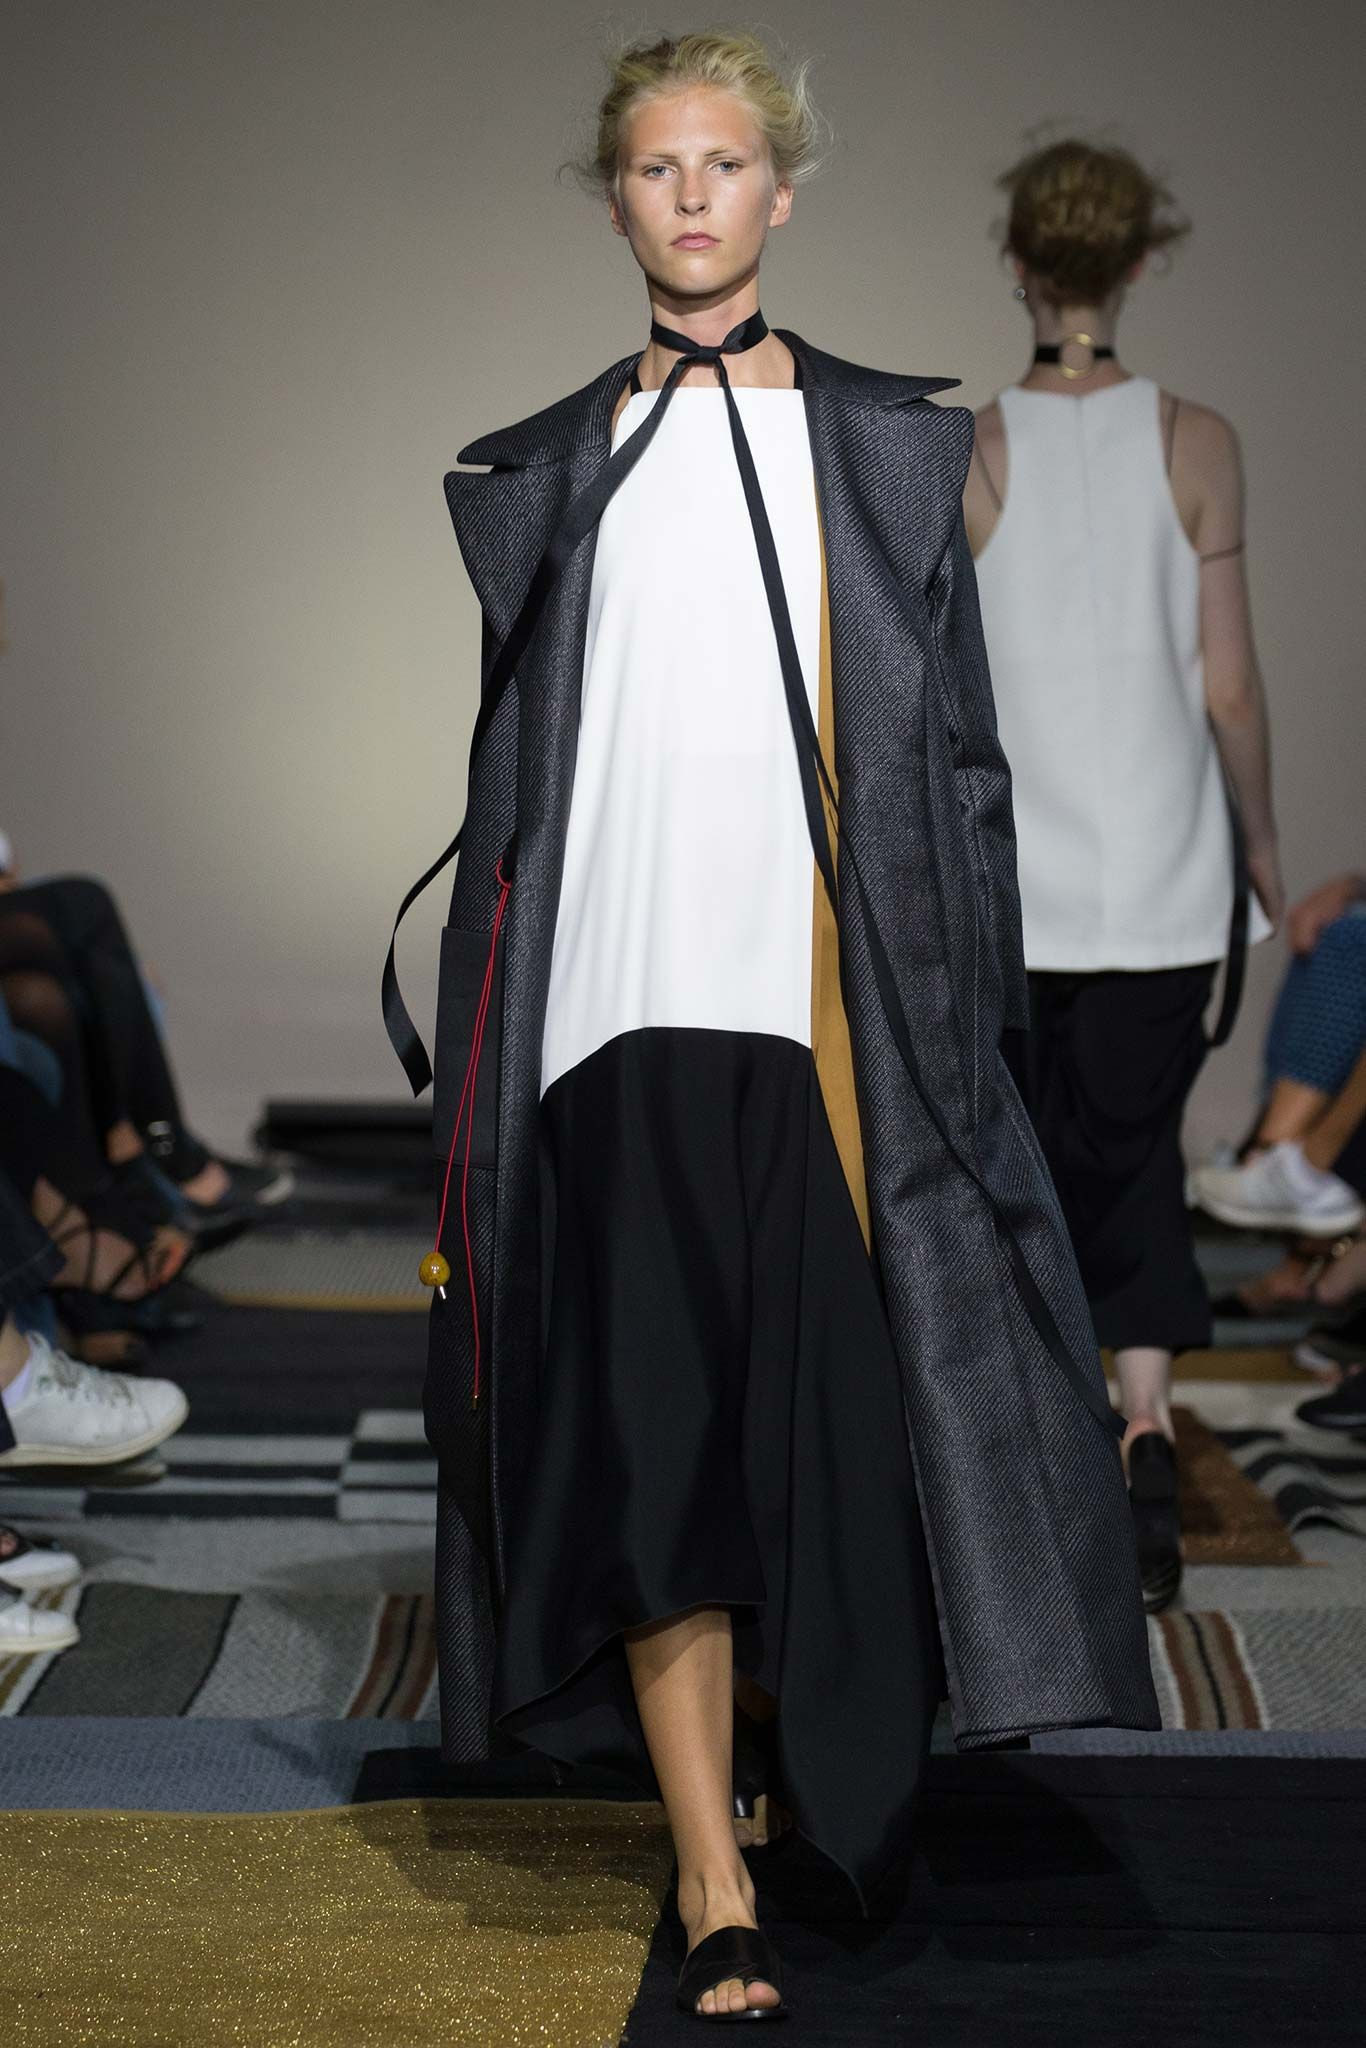 http://www.style.com/slideshows/fashion-shows/stockholm-spring-2016/altewaisaome/collection/20